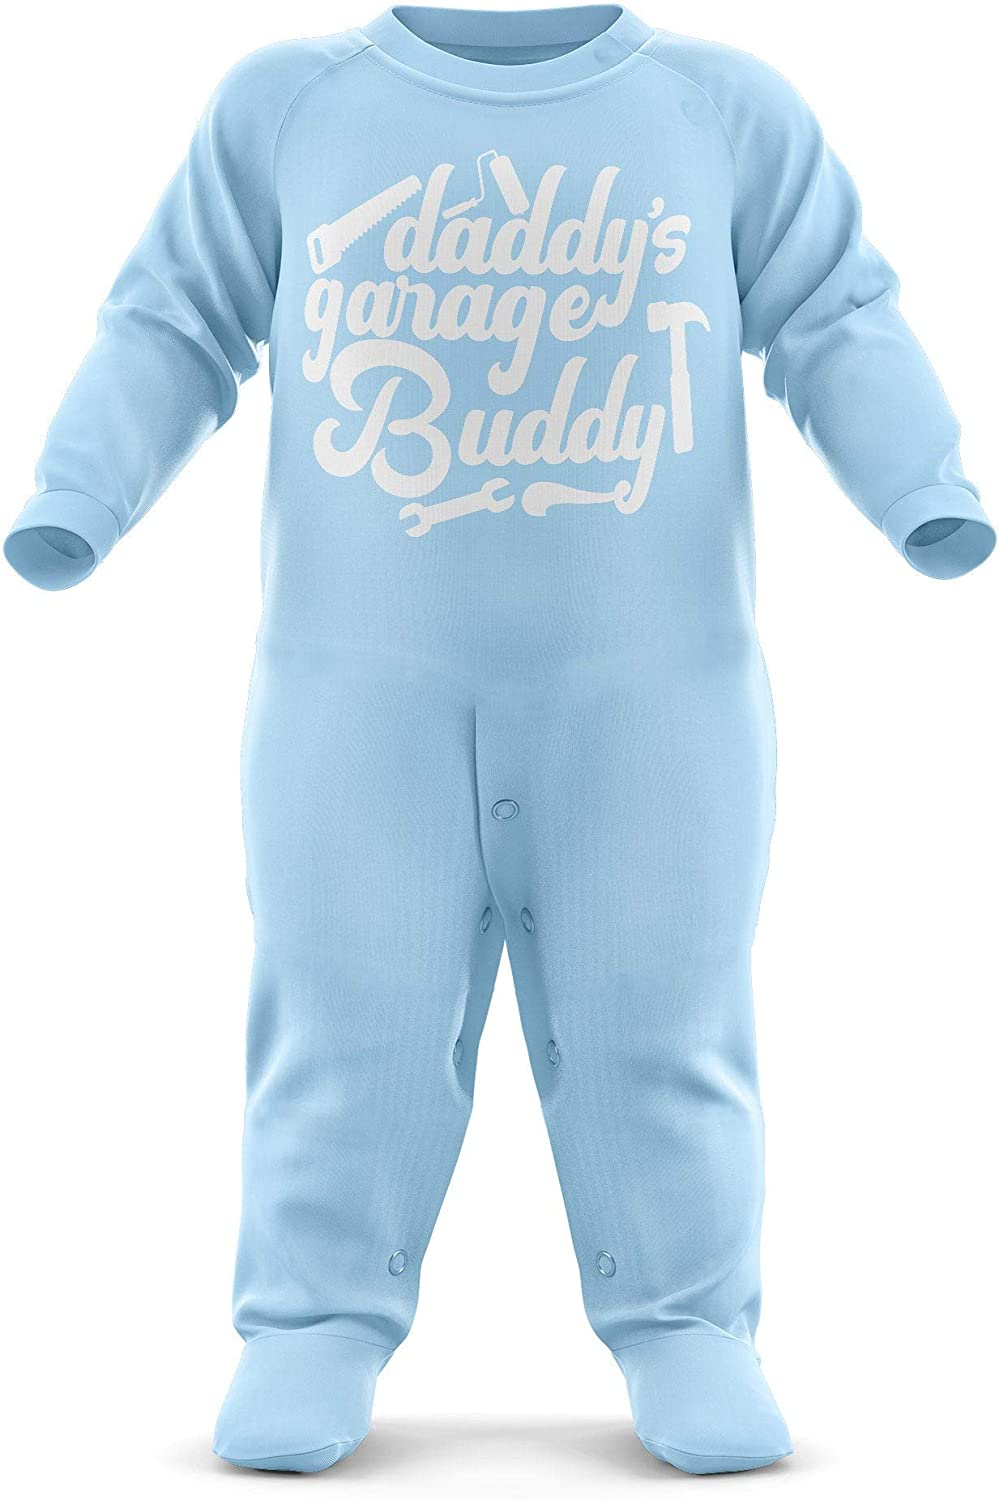 Funny Cool Baby Sleepsuit Daddys Garage Buddy Baby Romper Suit Babygrow Baby Newborn Gifts Father and Son//Daughter